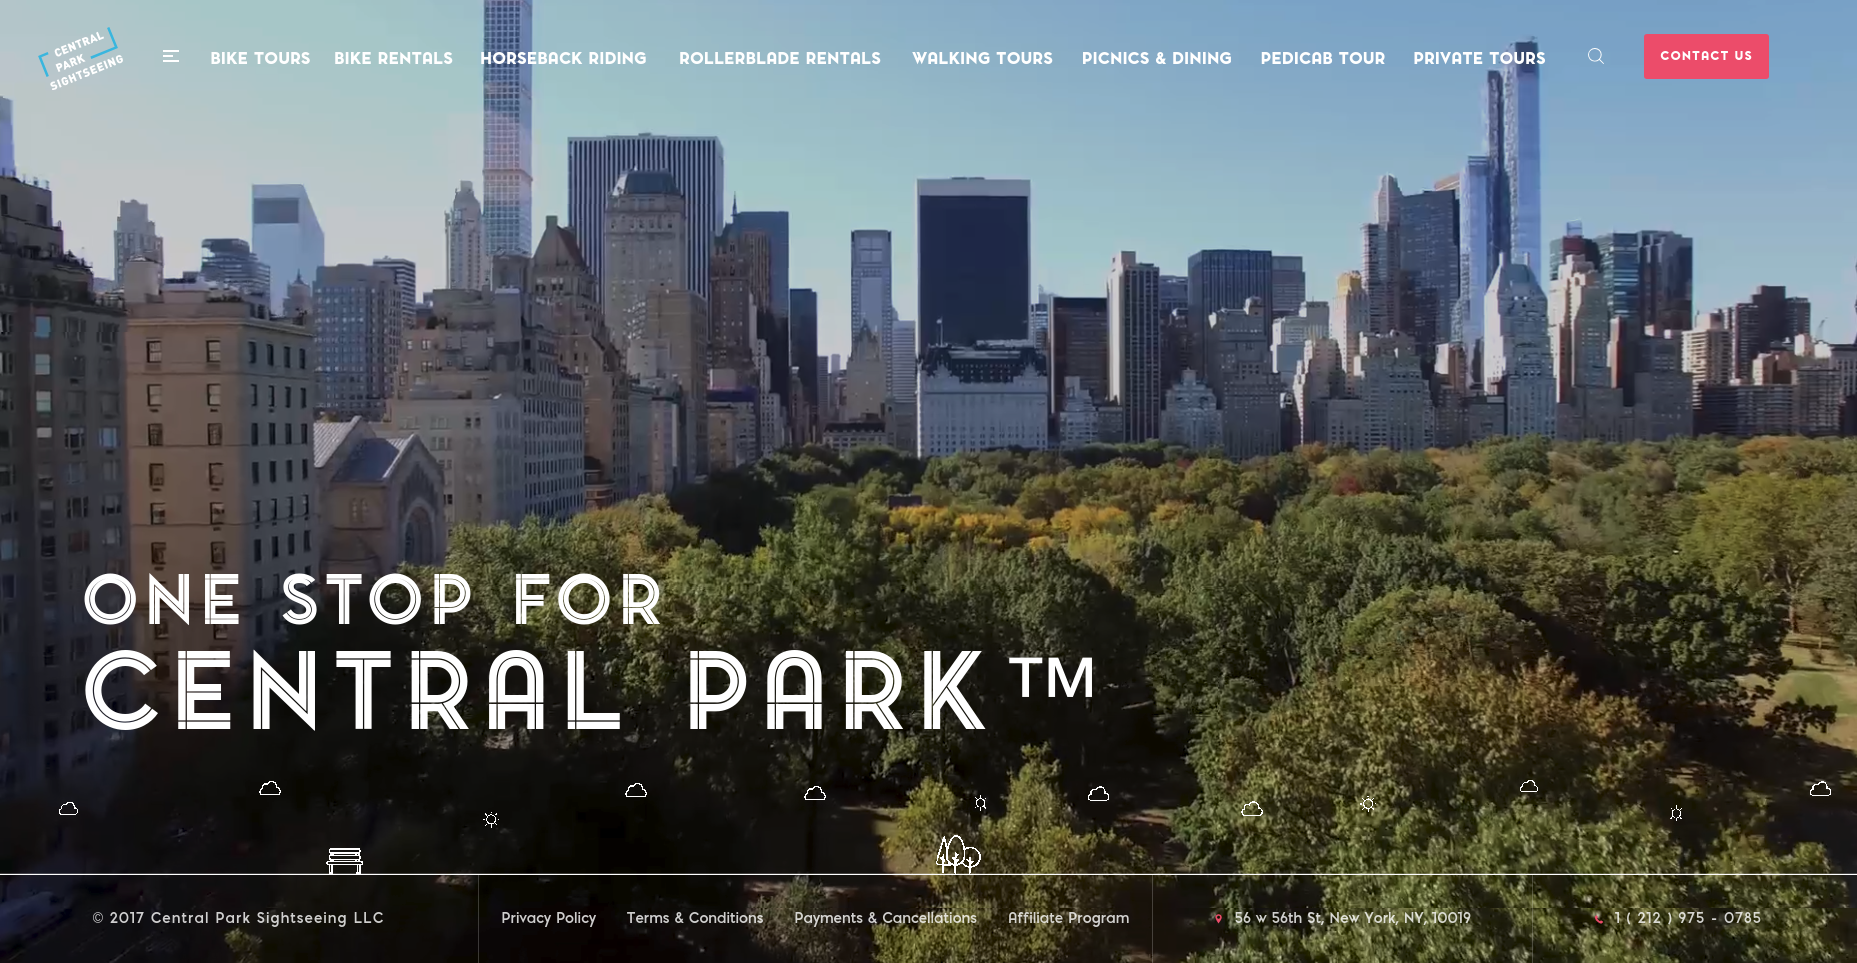 Central Park Sightseeing Website Design Preview